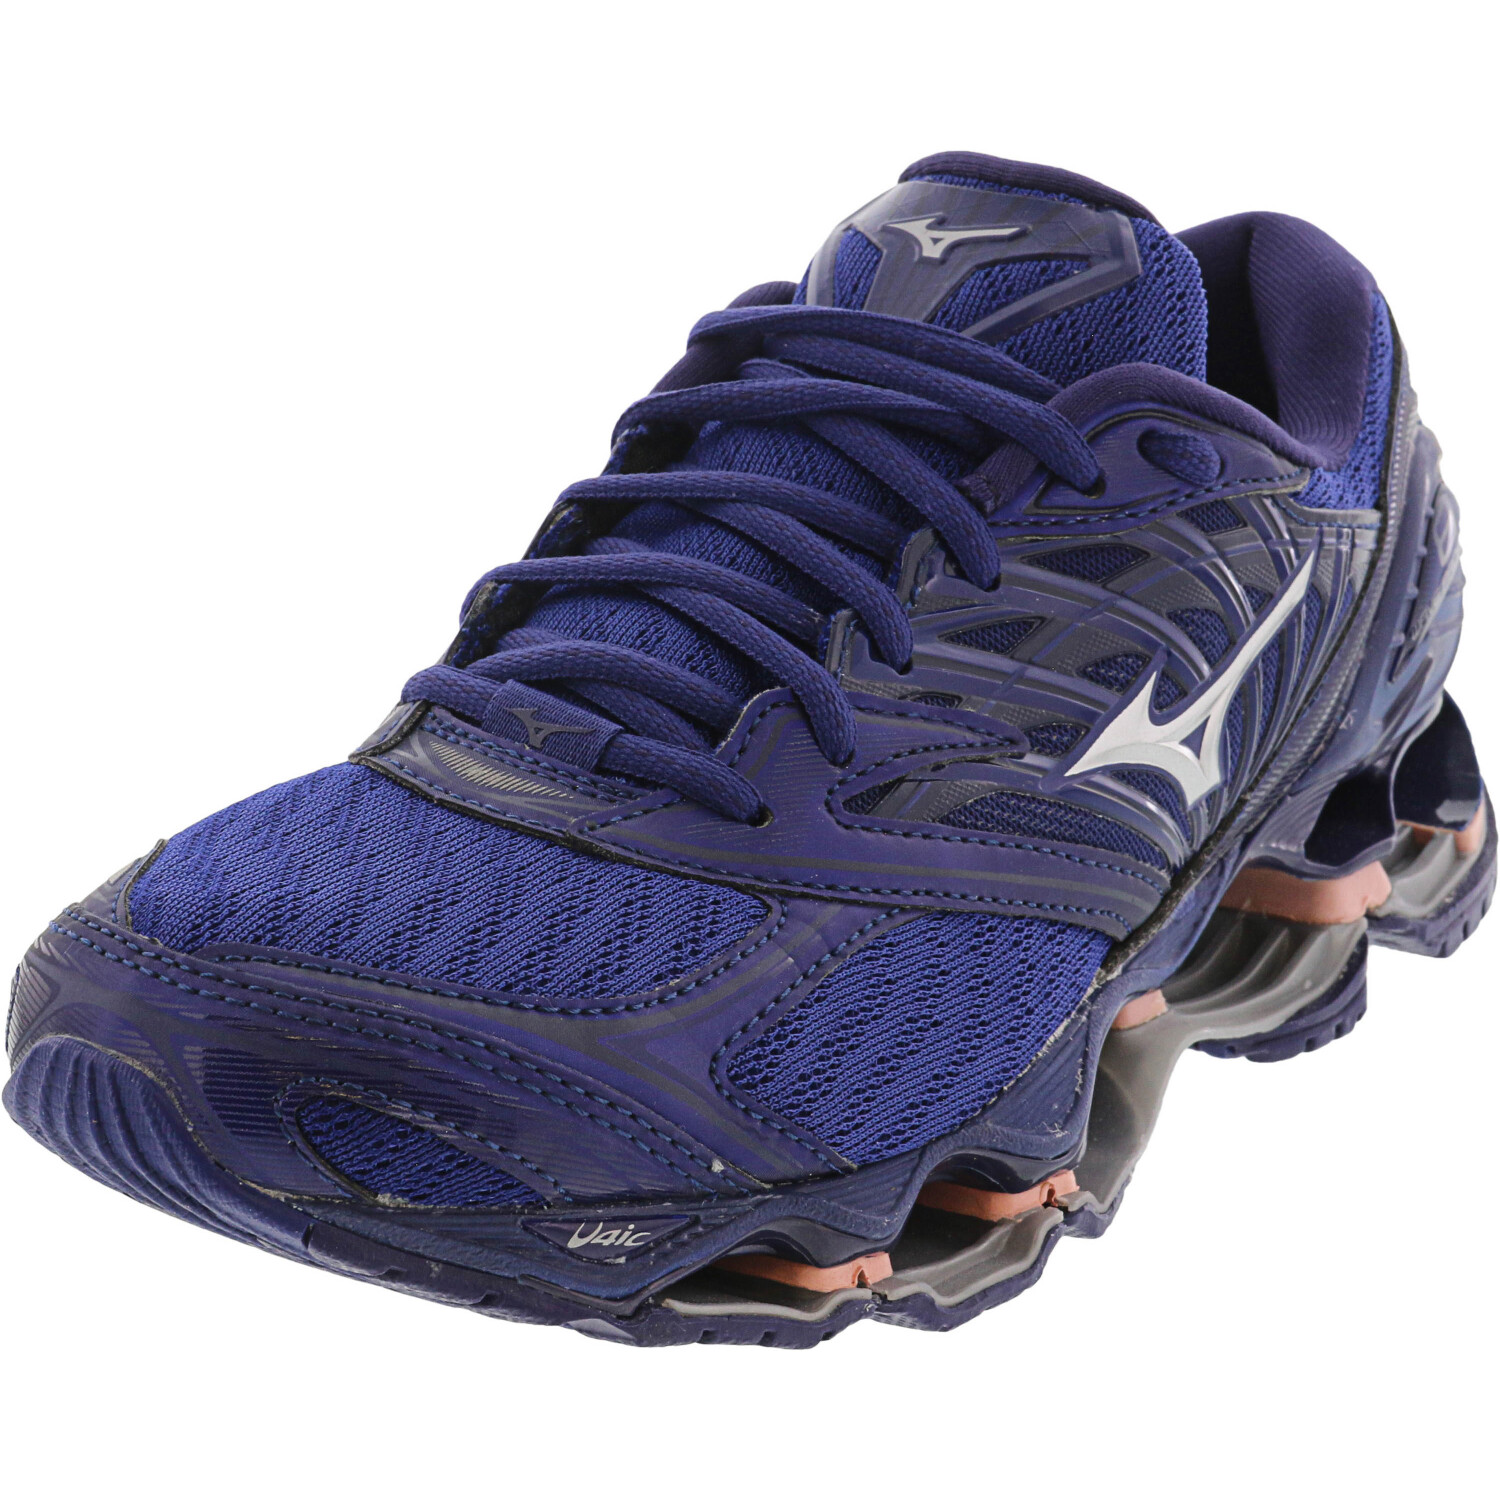 New Women/'s Mizuno Wave Prophecy 6 Running Shoes Size 8 Silver//Teal Last Pair